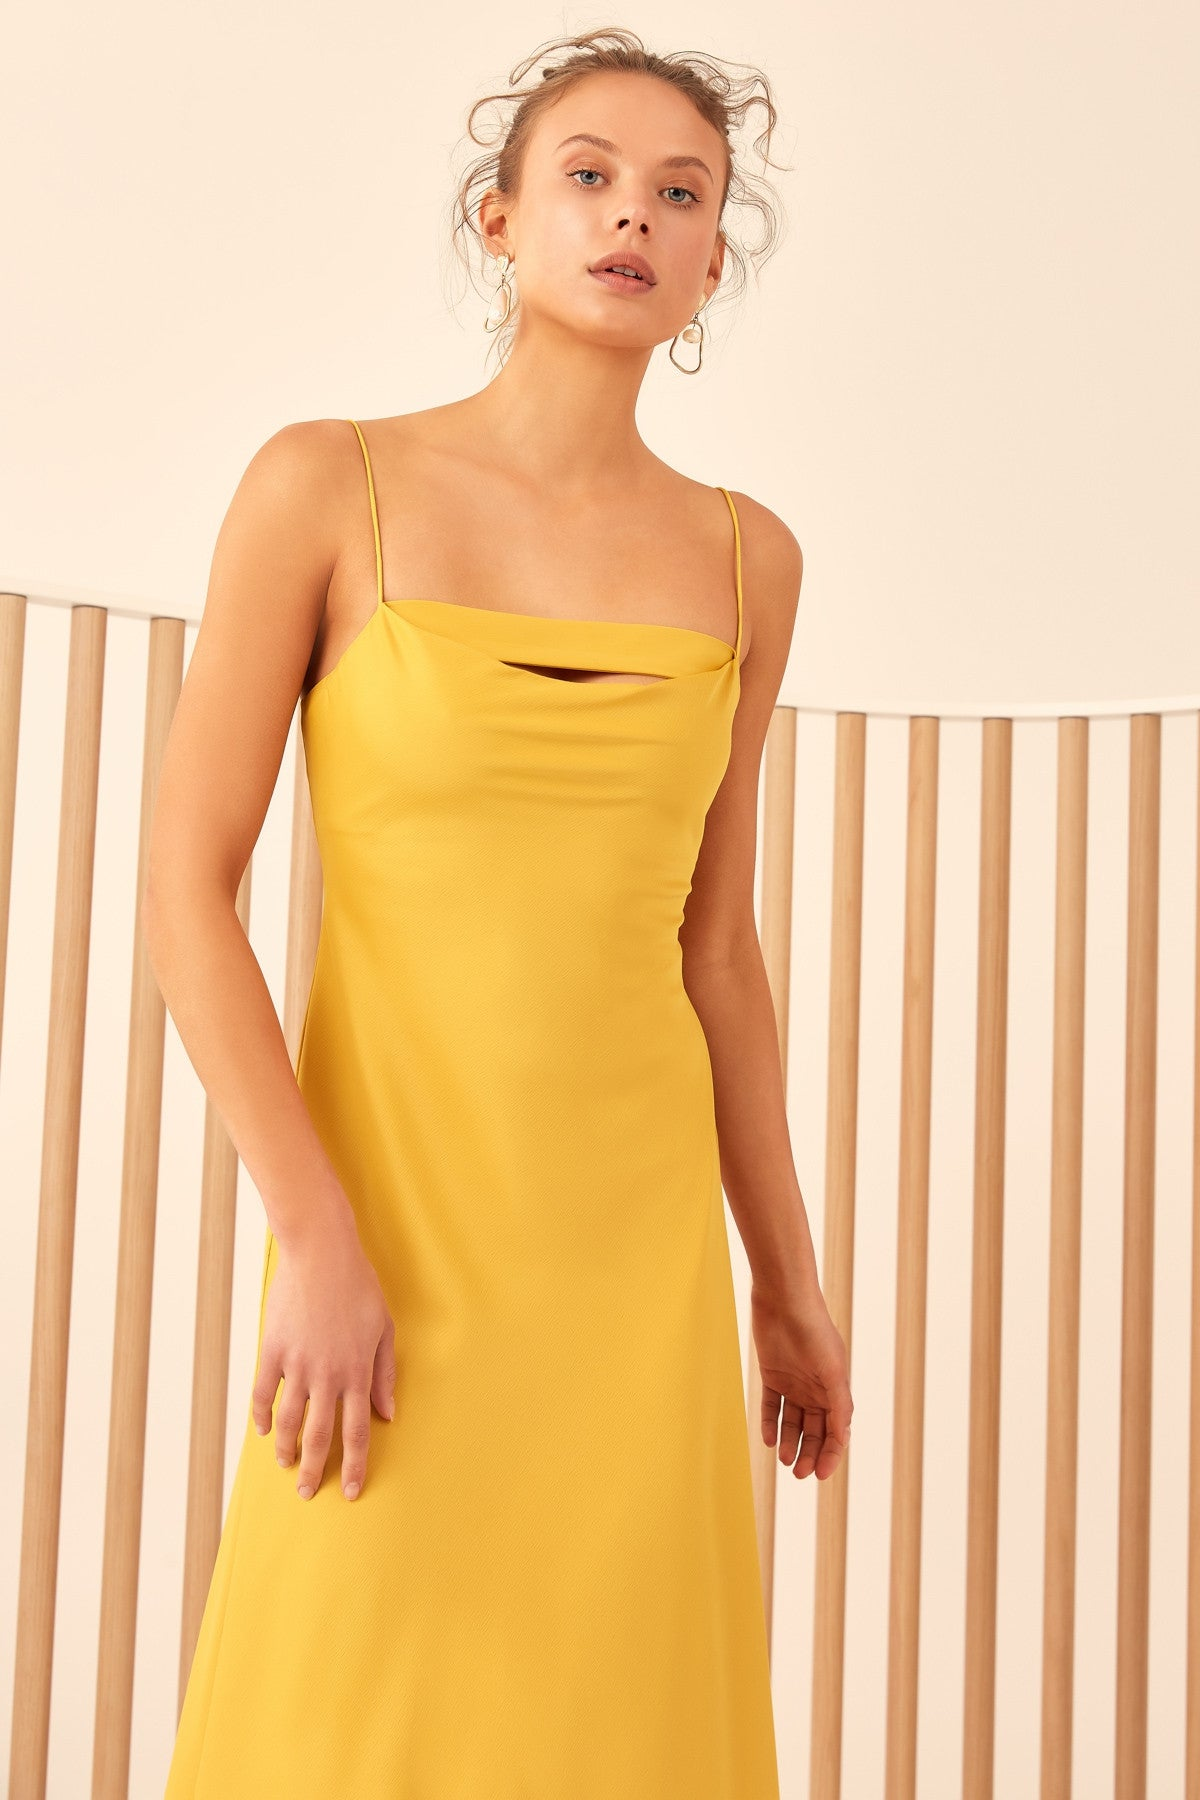 ALL RIGHT NOW SHORT SLEEVE DRESS yellow